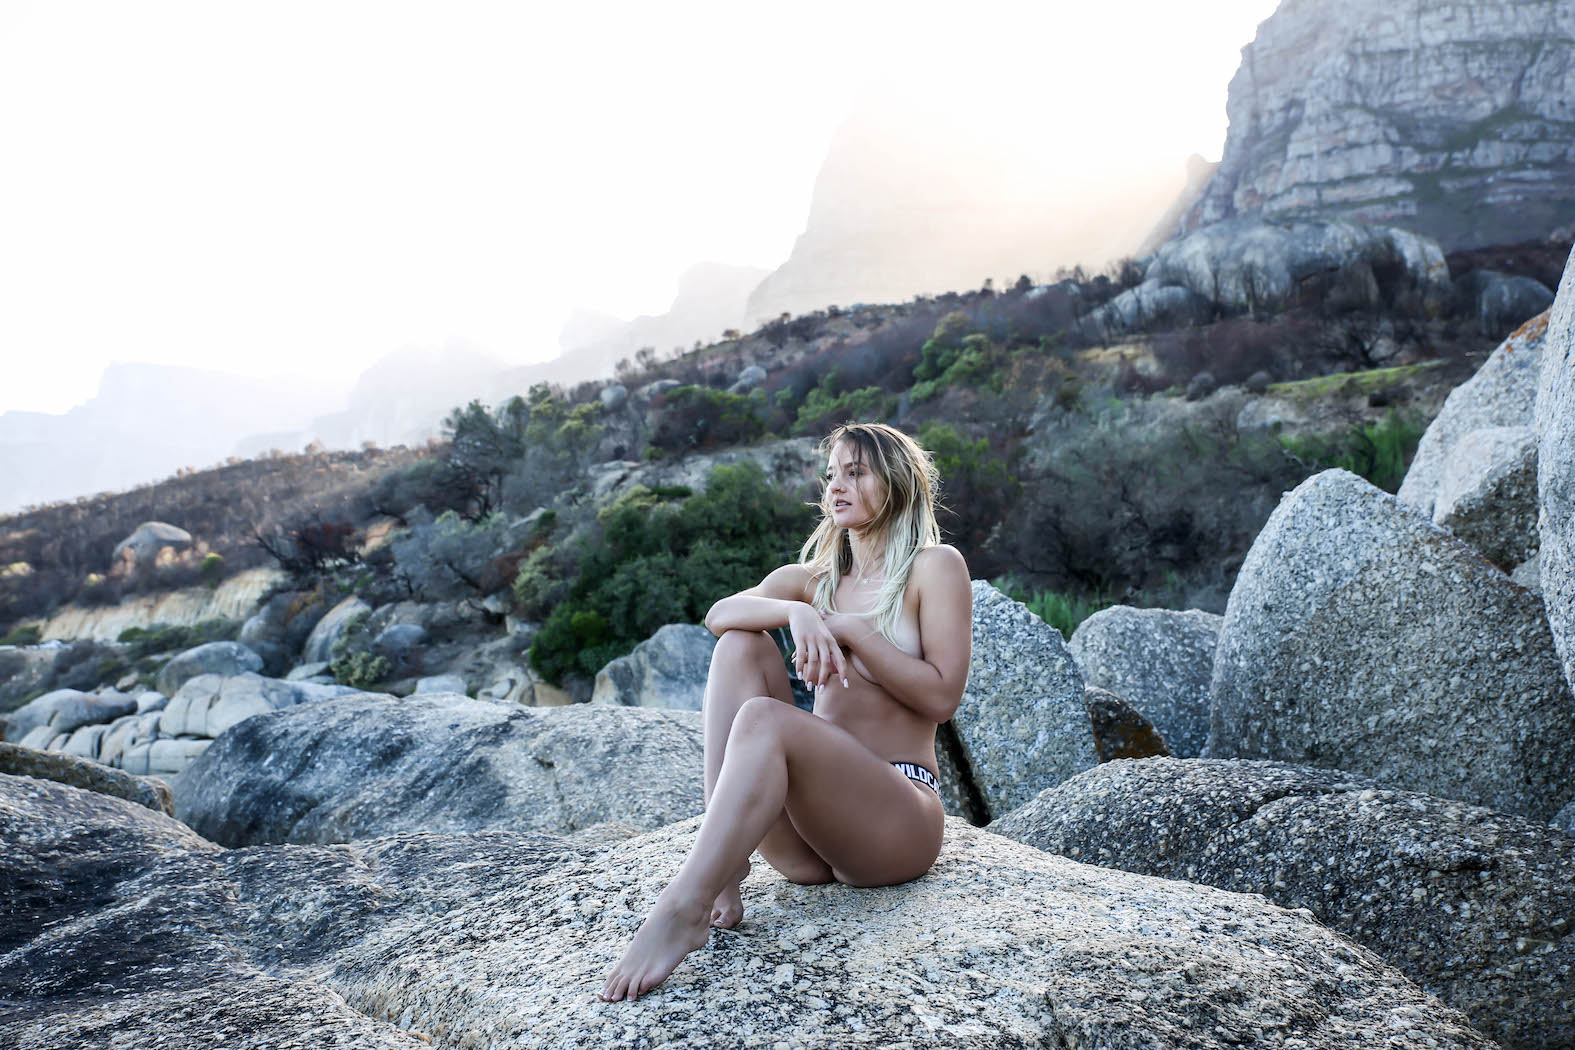 Our SA Babes feature with Kirsten Wylie